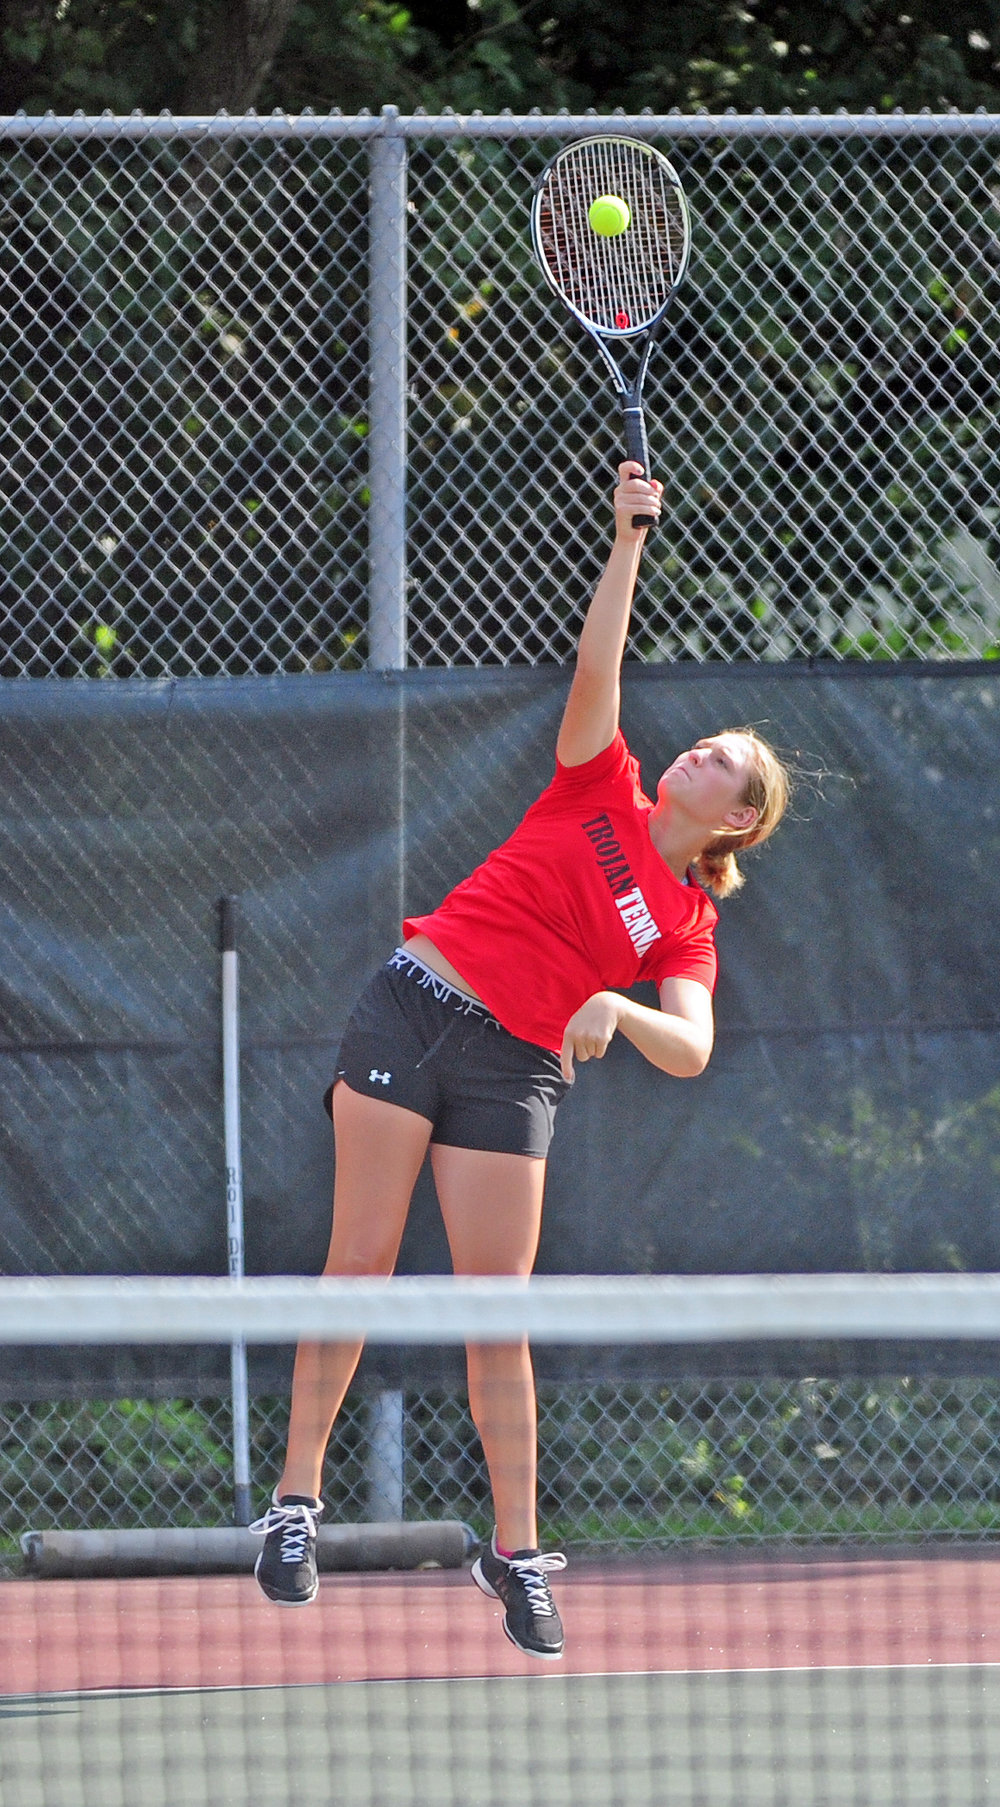 NICK INGRAM/Citizen photo Park Hill senior Lily Cota hits a serve during a dual with Lee's Summit North on Thursday, Aug. 31 at Barry Park in Kansas City, Mo.